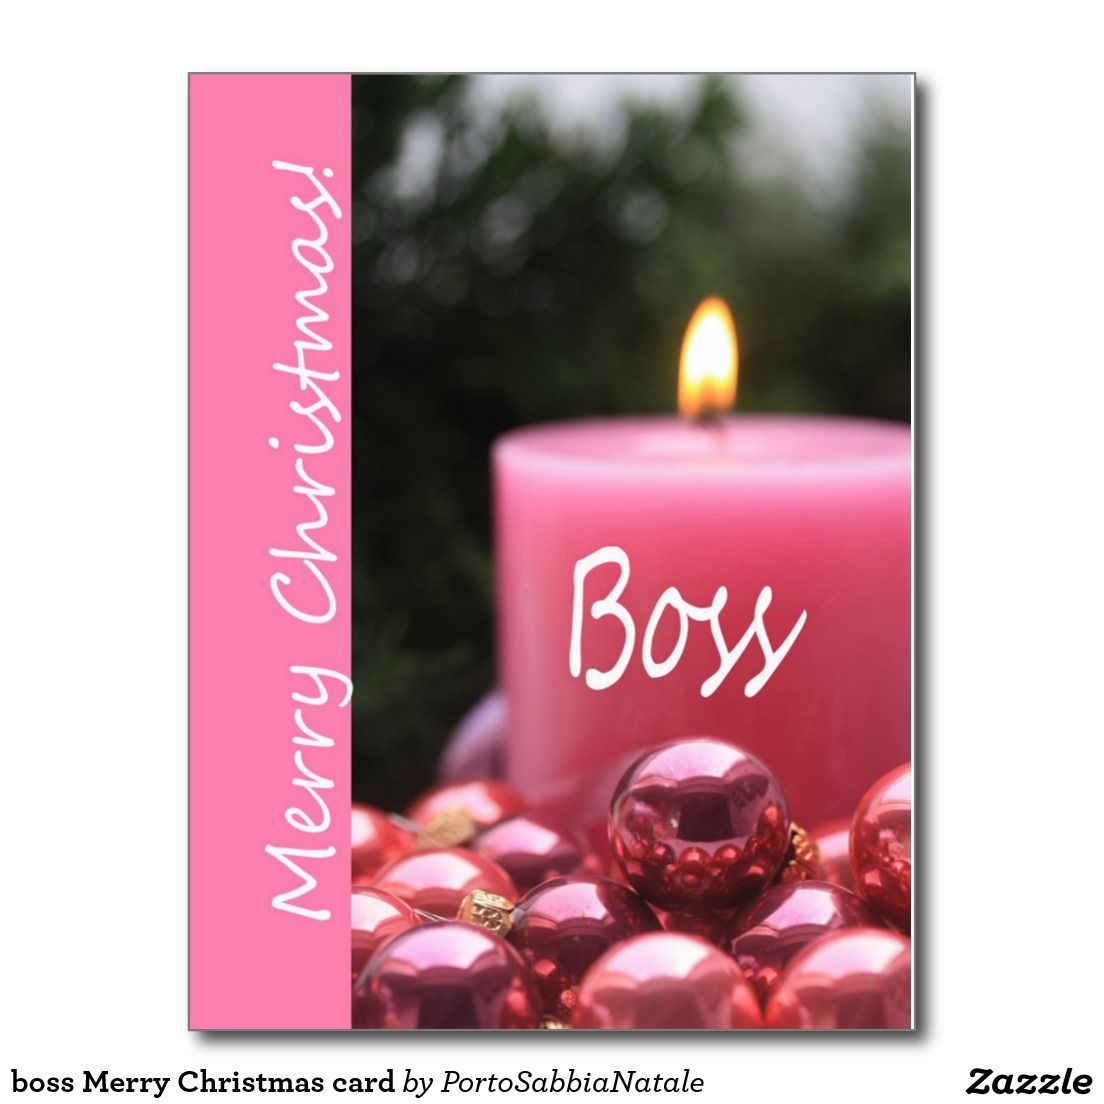 Boss merry christmas card postcard stuff sold on zazzle boss merry christmas card postcard kristyandbryce Image collections